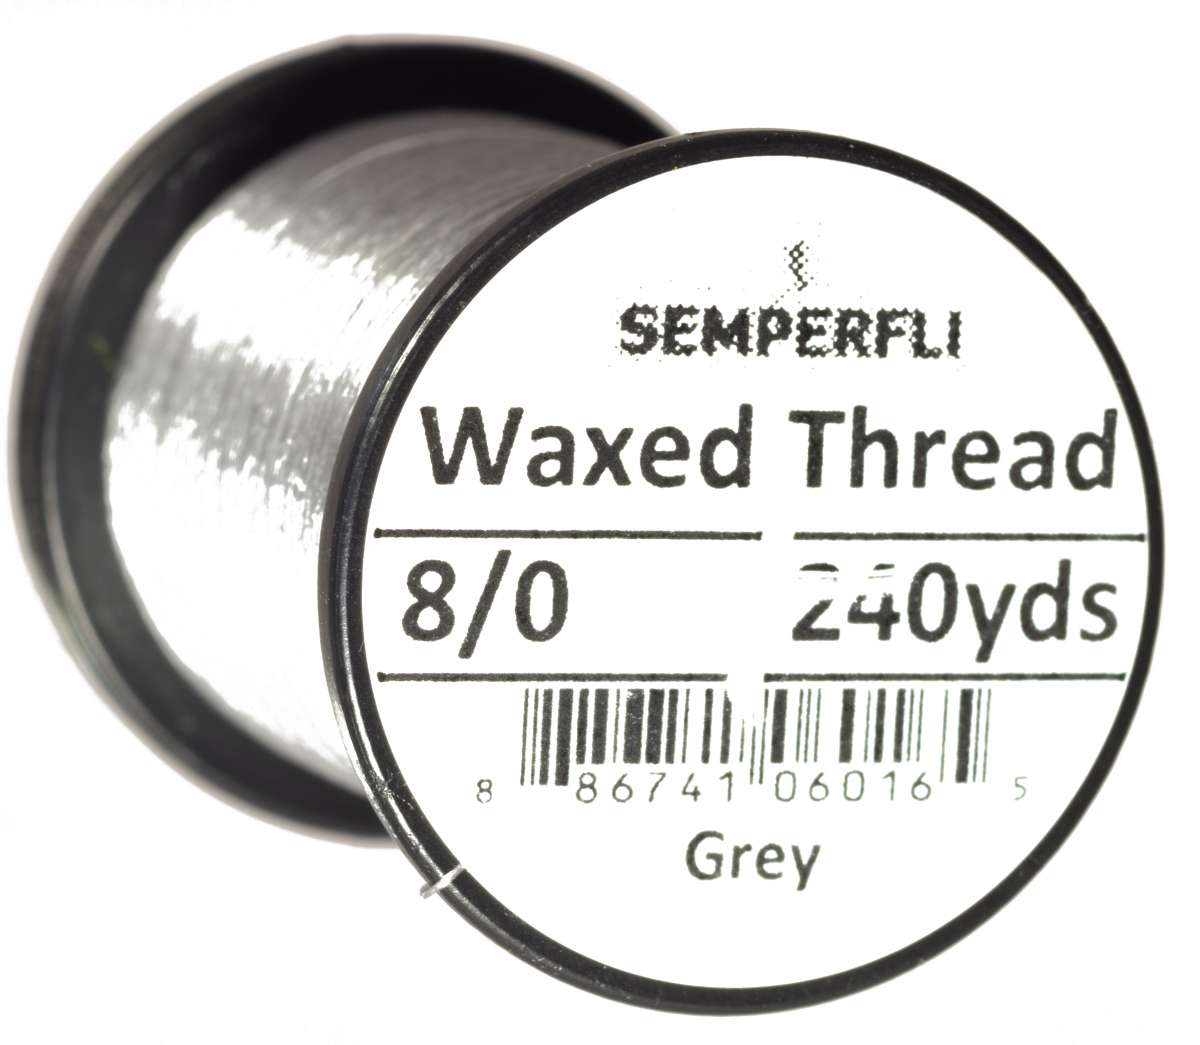 8/8 Classic Waxed Thread Grey Sem-0400-1960